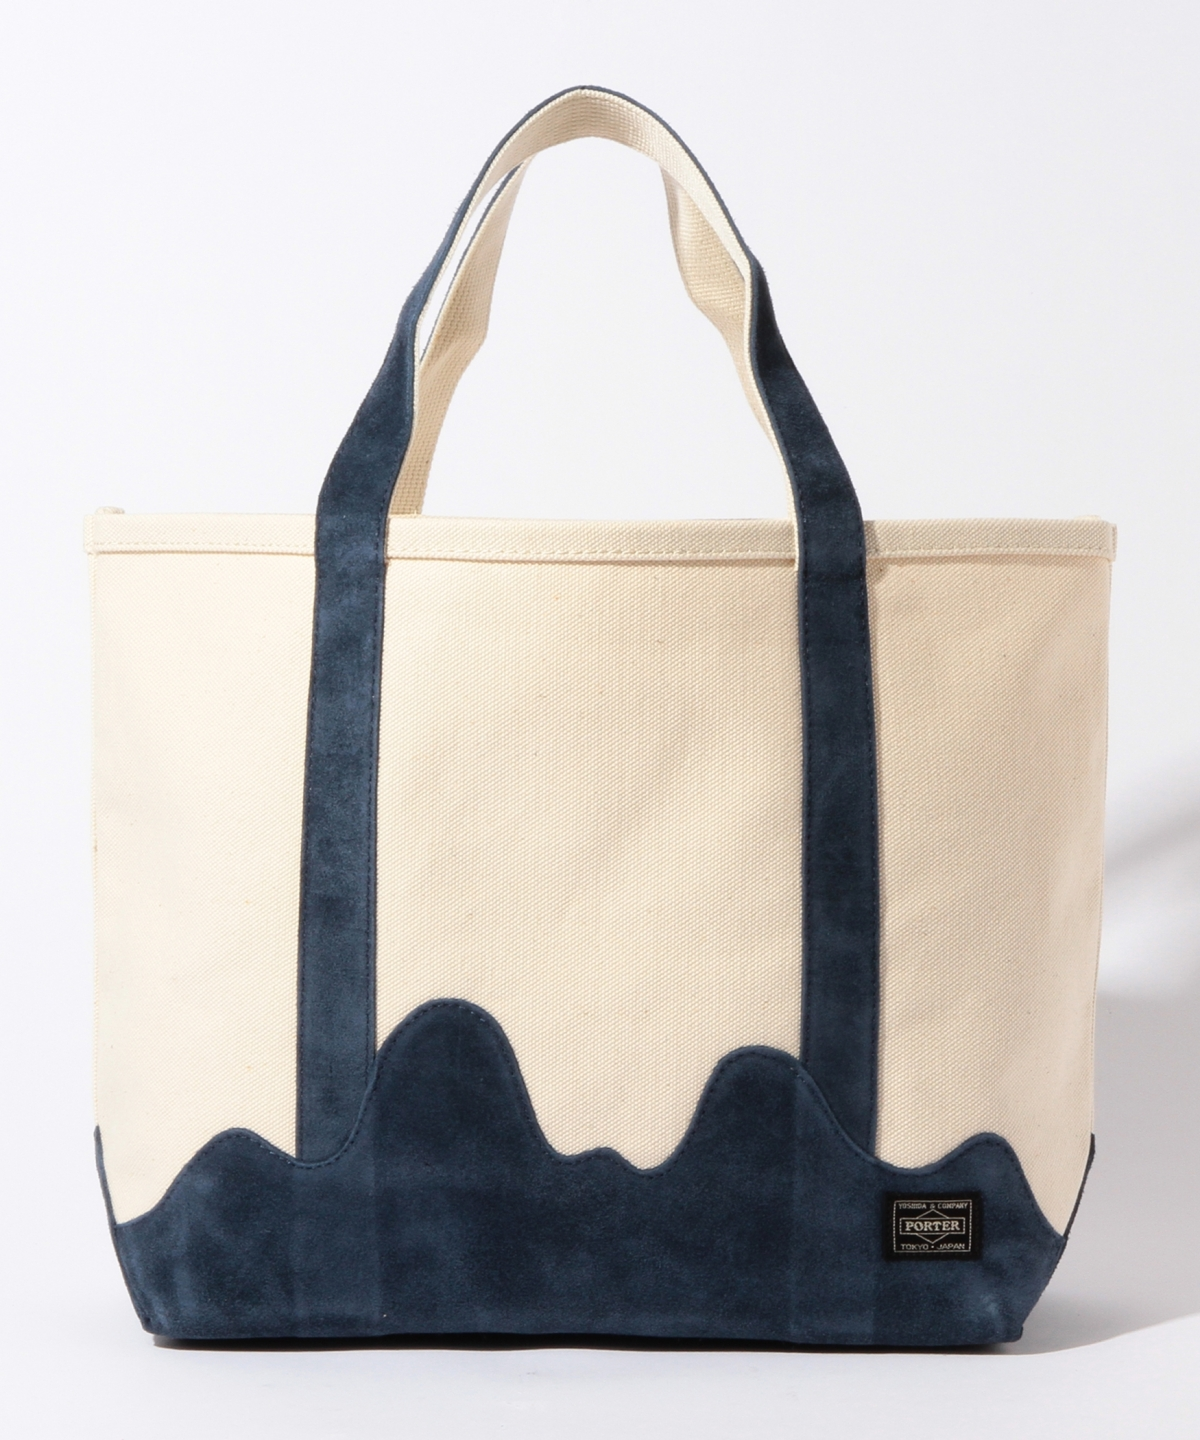 http://shop.beams.co.jp/item/bjirushi/bag/25610071354/